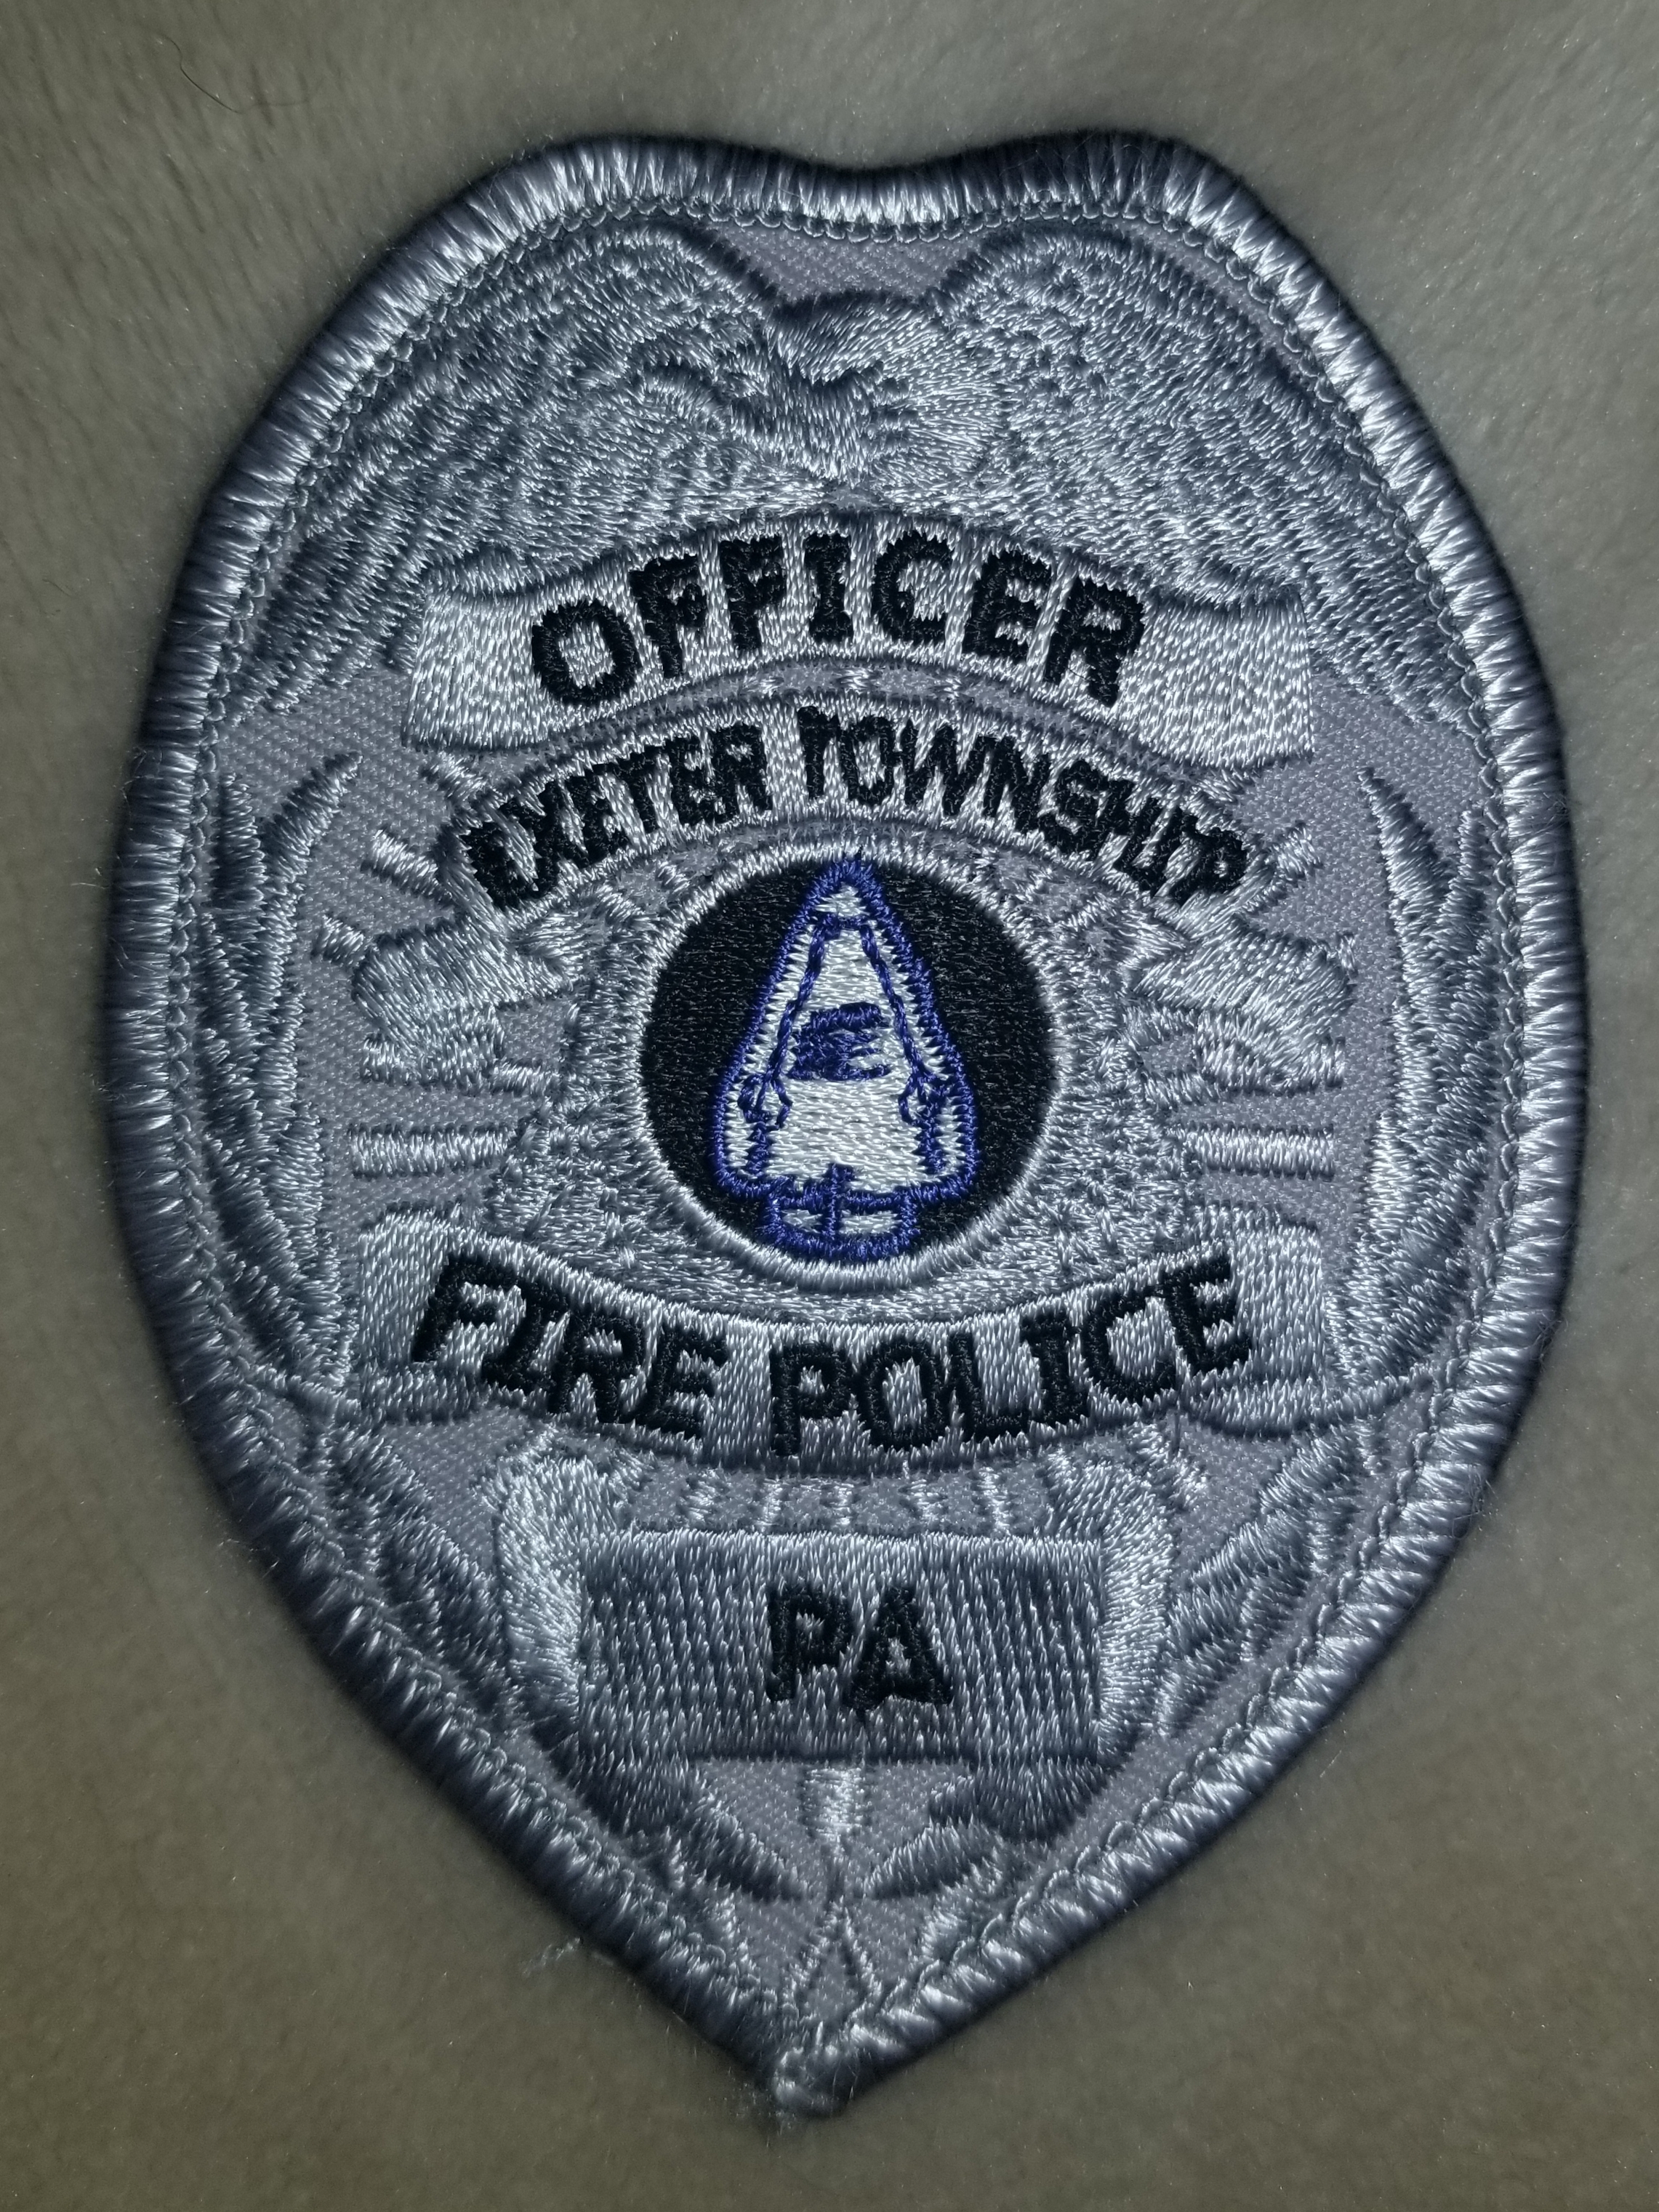 Exeter Township Fire Police Officer PA